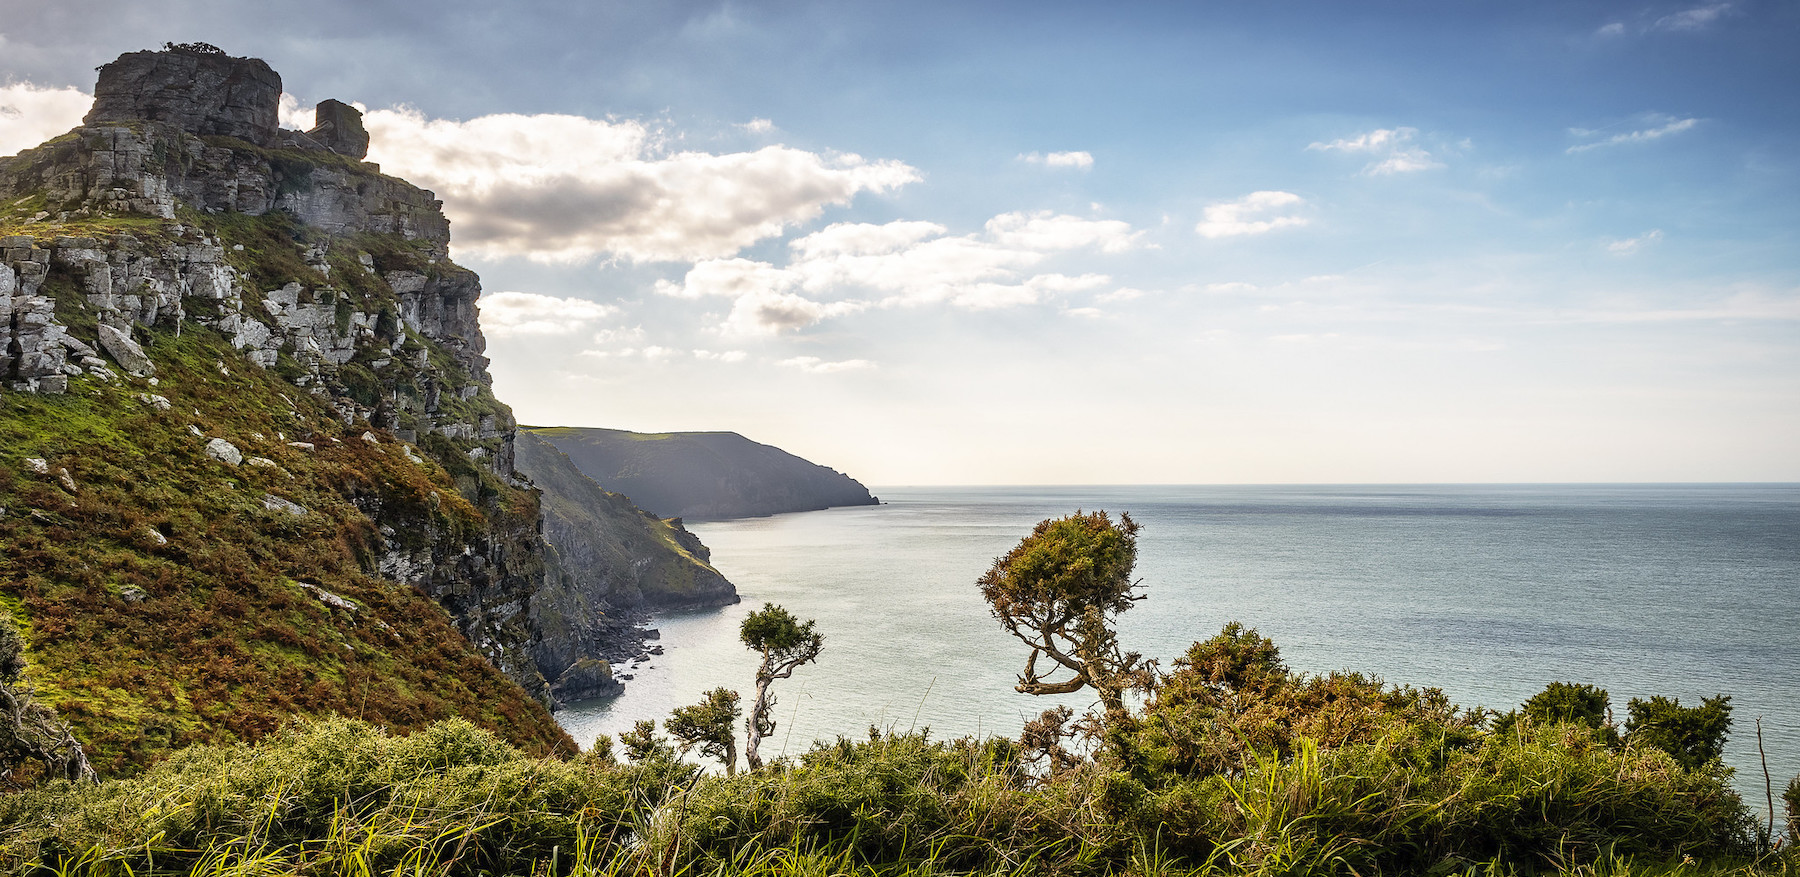 Valley of the Rocks photo